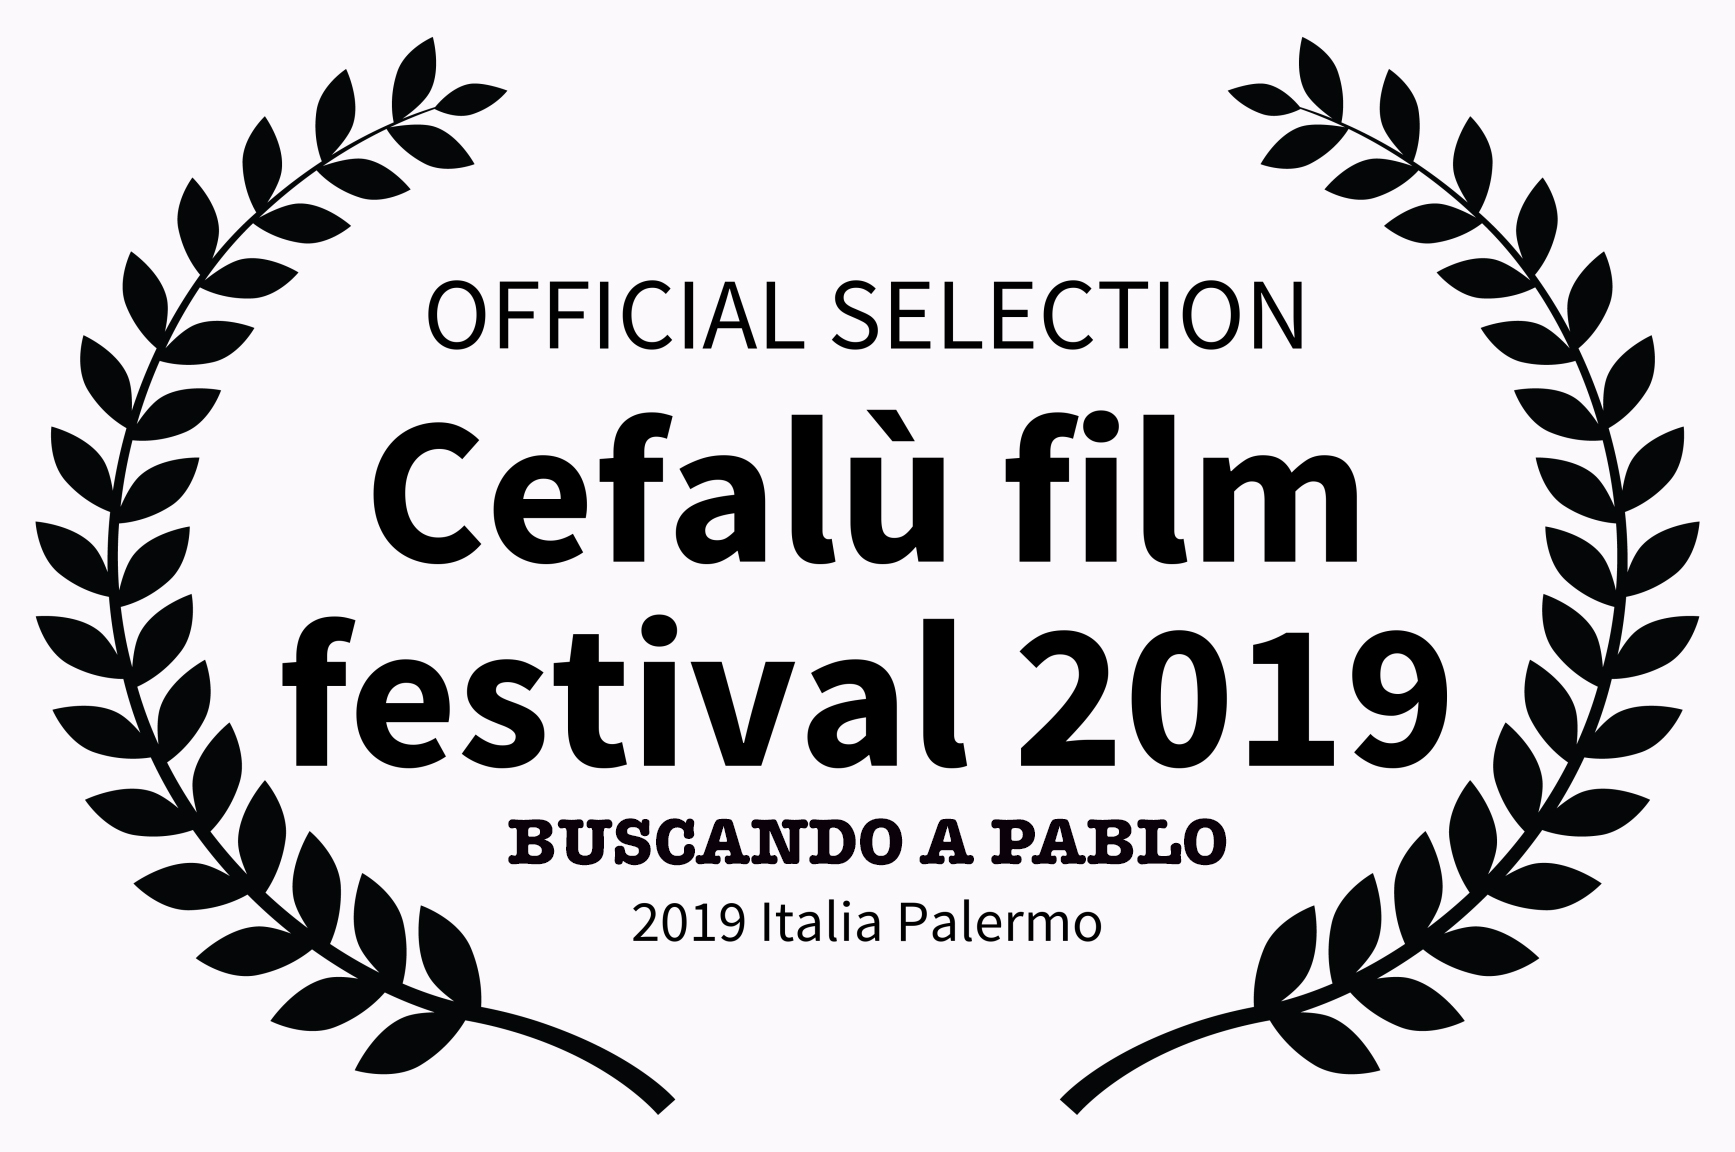 OFFICIAL SELECTION - Cefal film festival